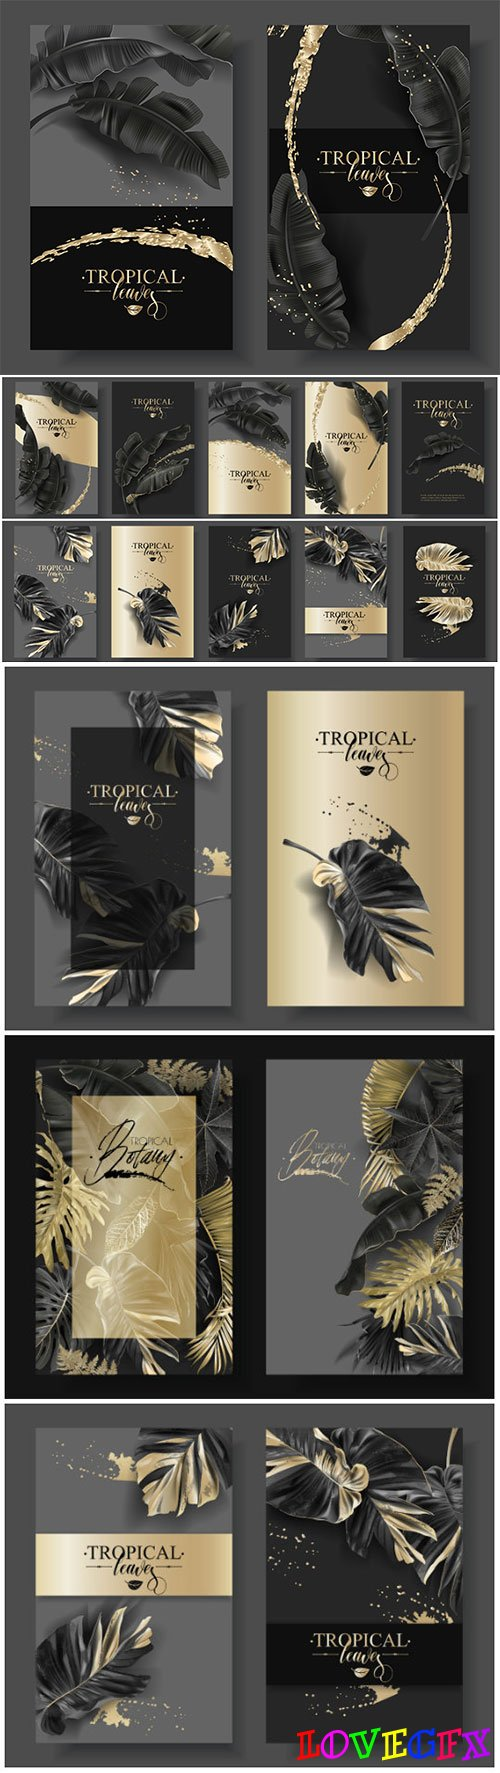 Vector banners with black gold tropical leaves and splashes, luxury exotic botanical design for cosmetics